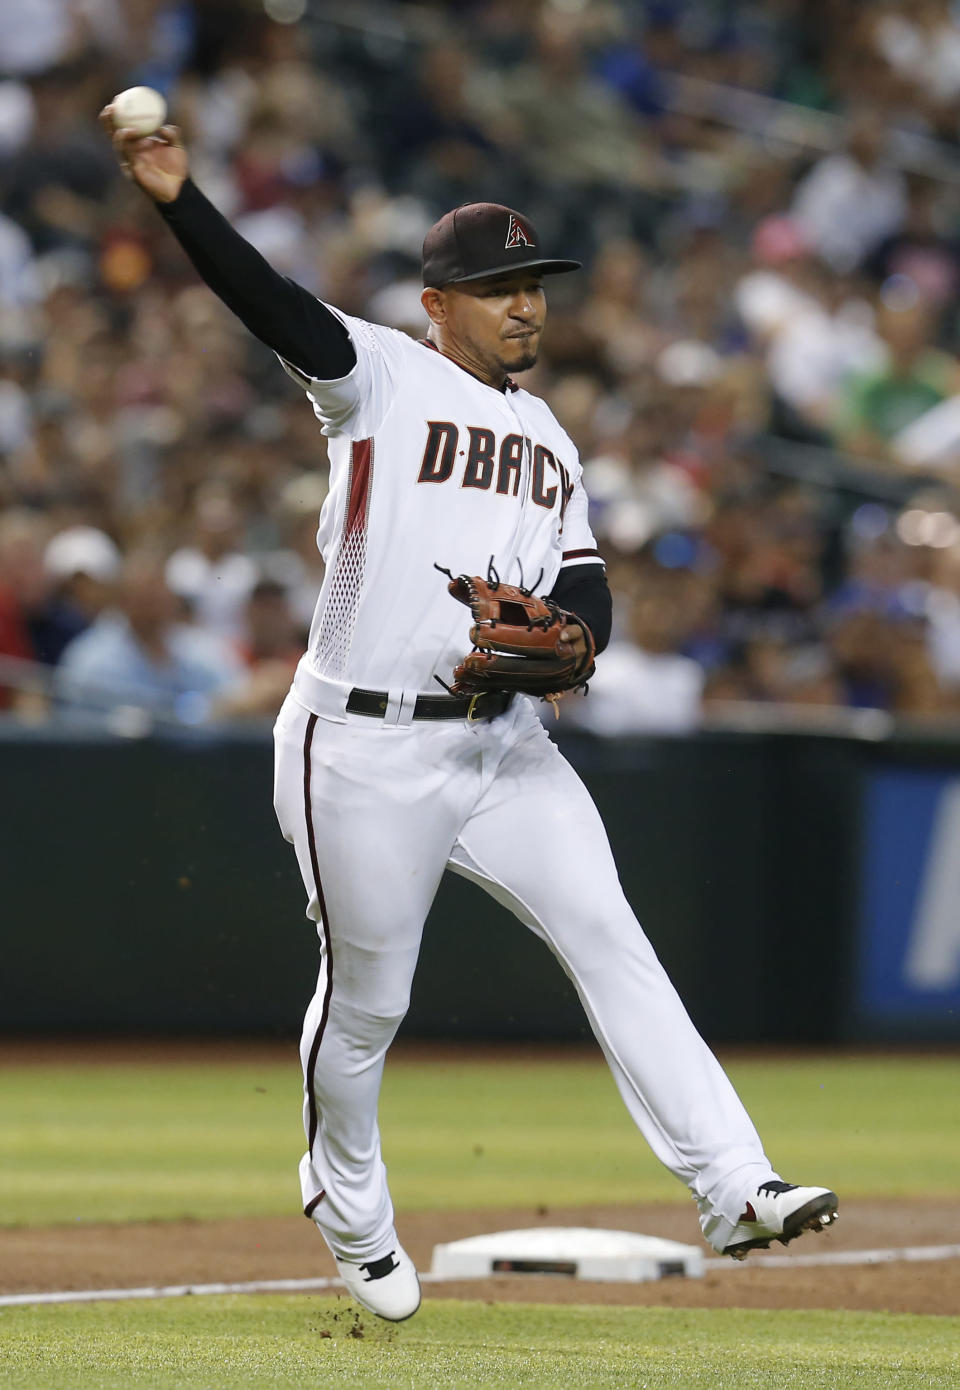 Arizona Diamondbacks third baseman Eduardo Escobar makes the off balance throw for an out on a ball hit by Los Angeles Dodgers' Will Smith in the fifth inning during a baseball game, Wednesday, June 5, 2019, in Phoenix. (AP Photo/Rick Scuteri)